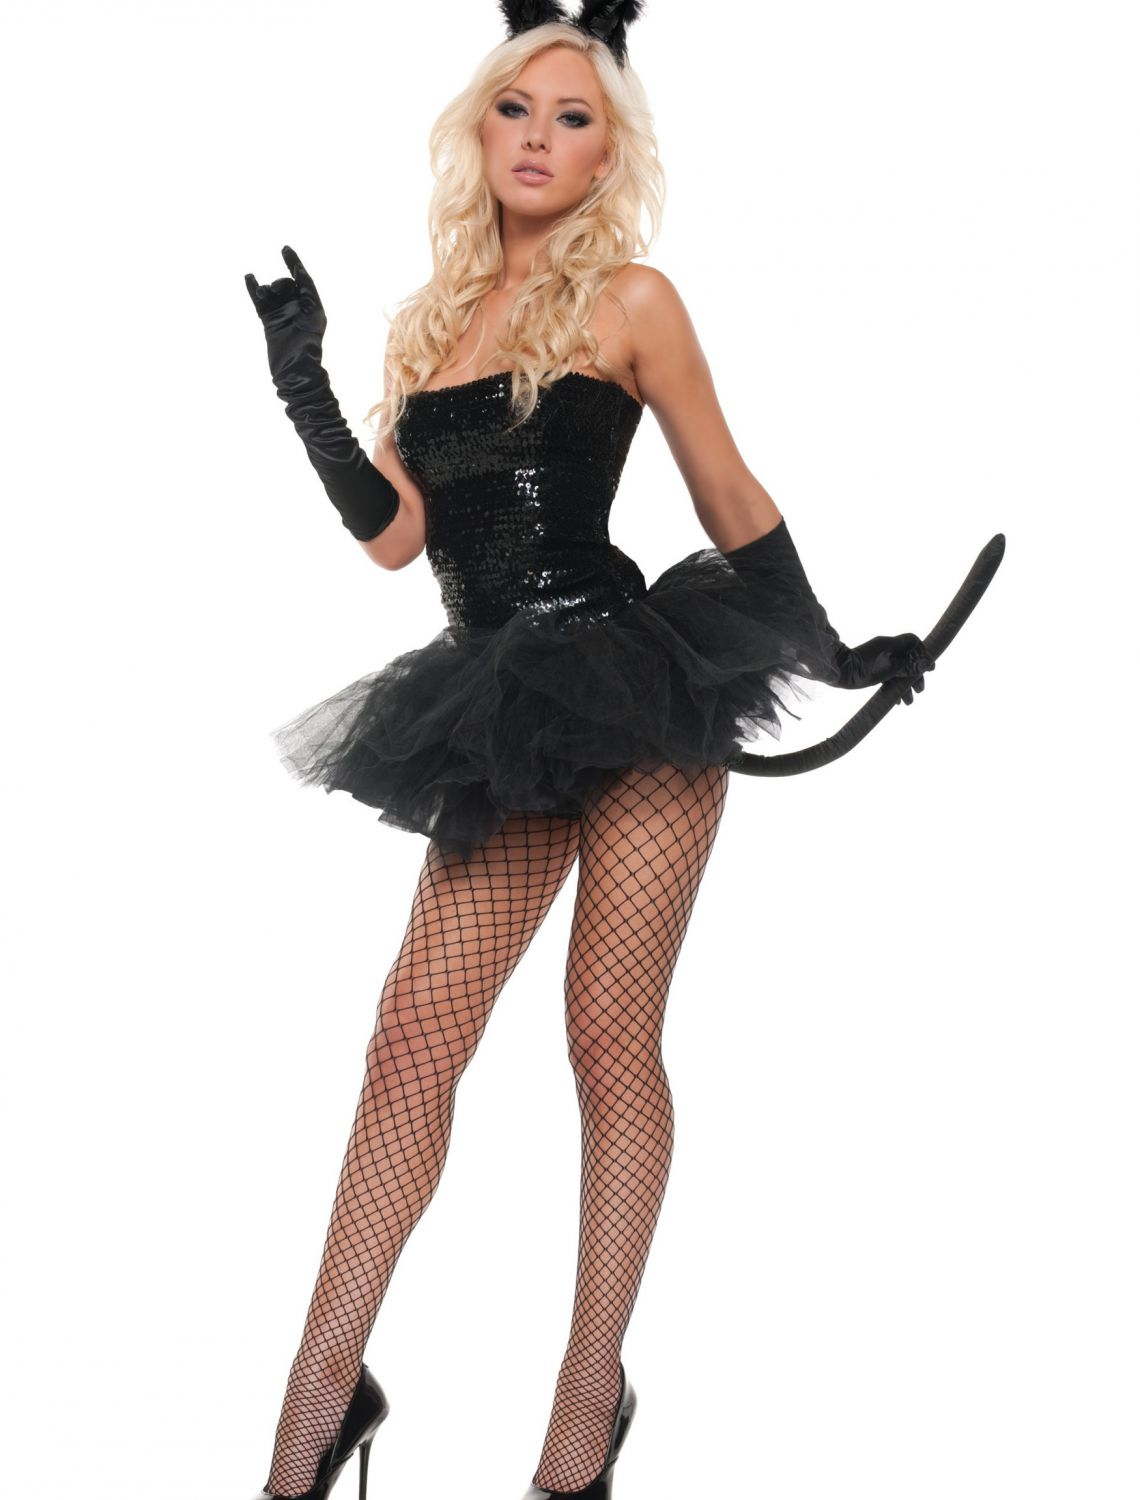 Kinky halloween costumes porncraft funny girl